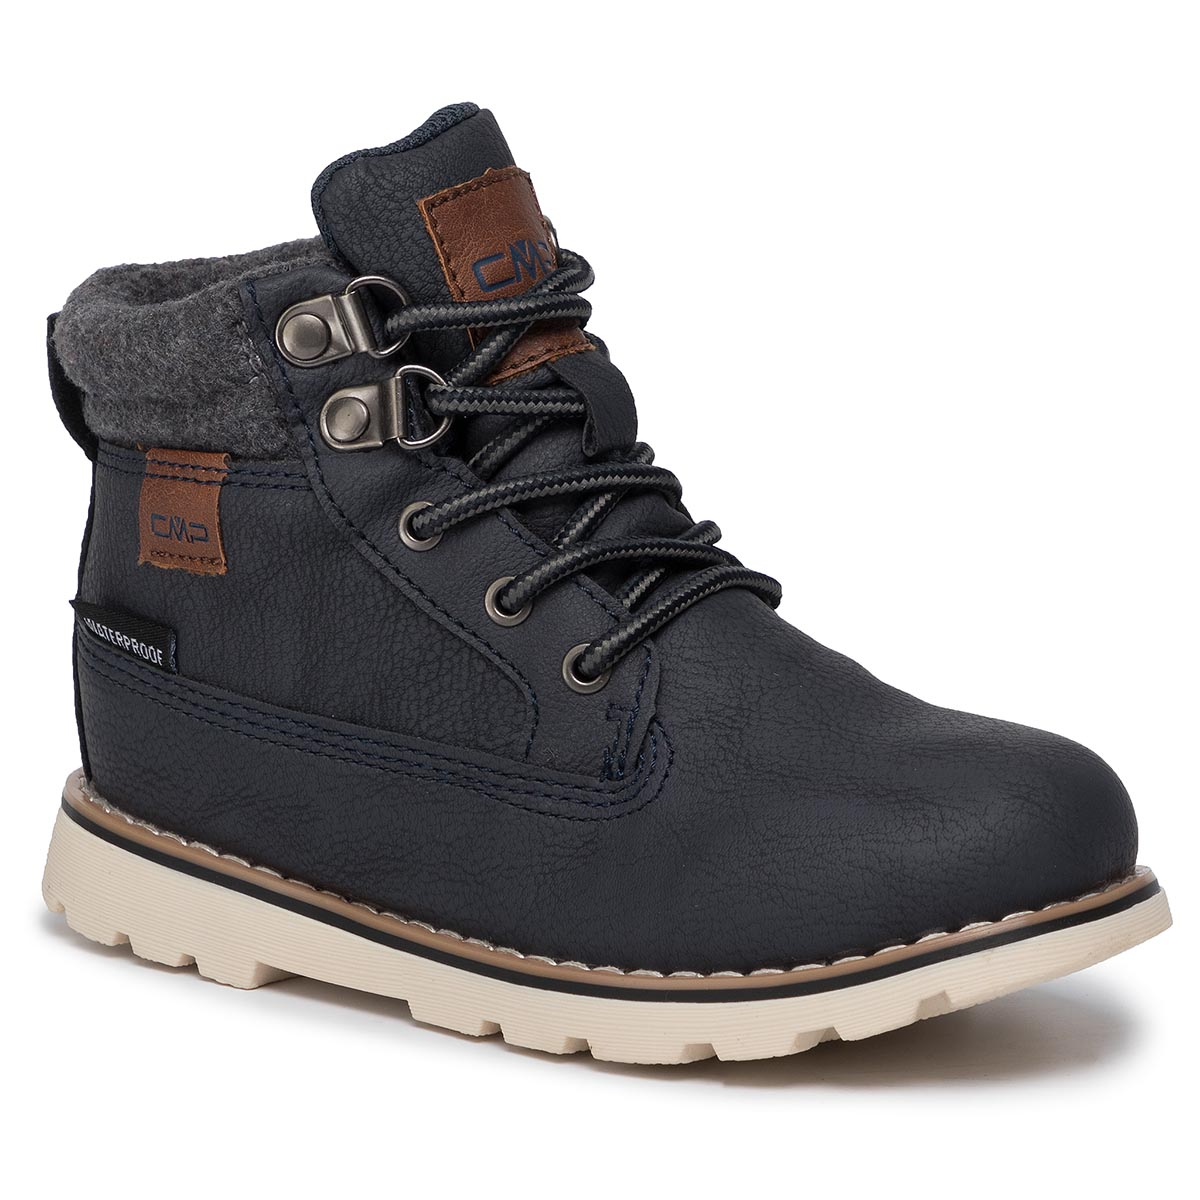 Trappers CMP - Kids Thuban Lifestyle Shoes Wp 39Q4944 Antracite U423